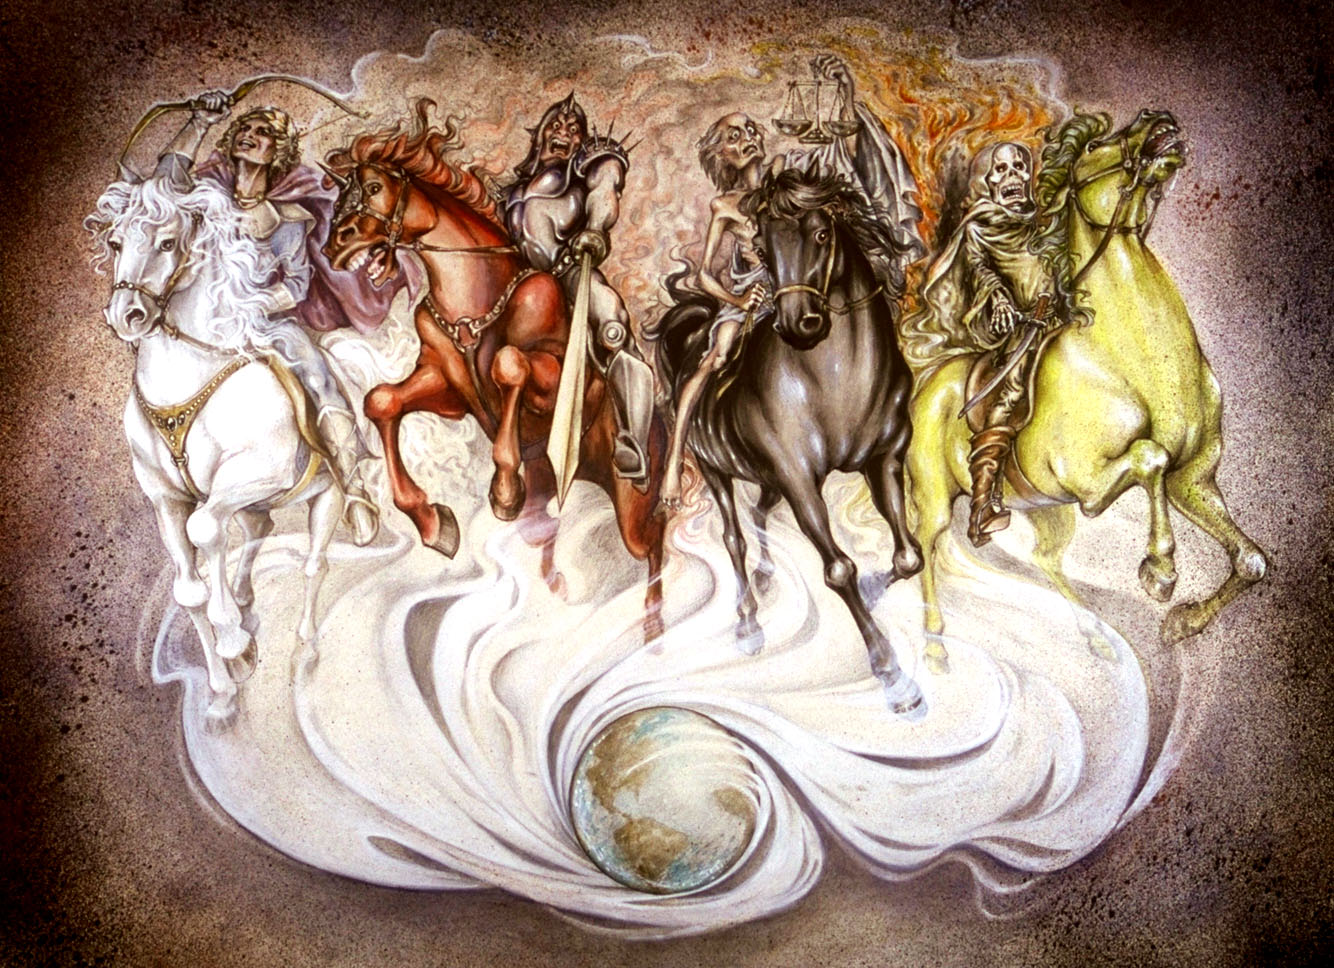 THE FOUR HORSEMEN OF THE APOCALYPSE 1334x968